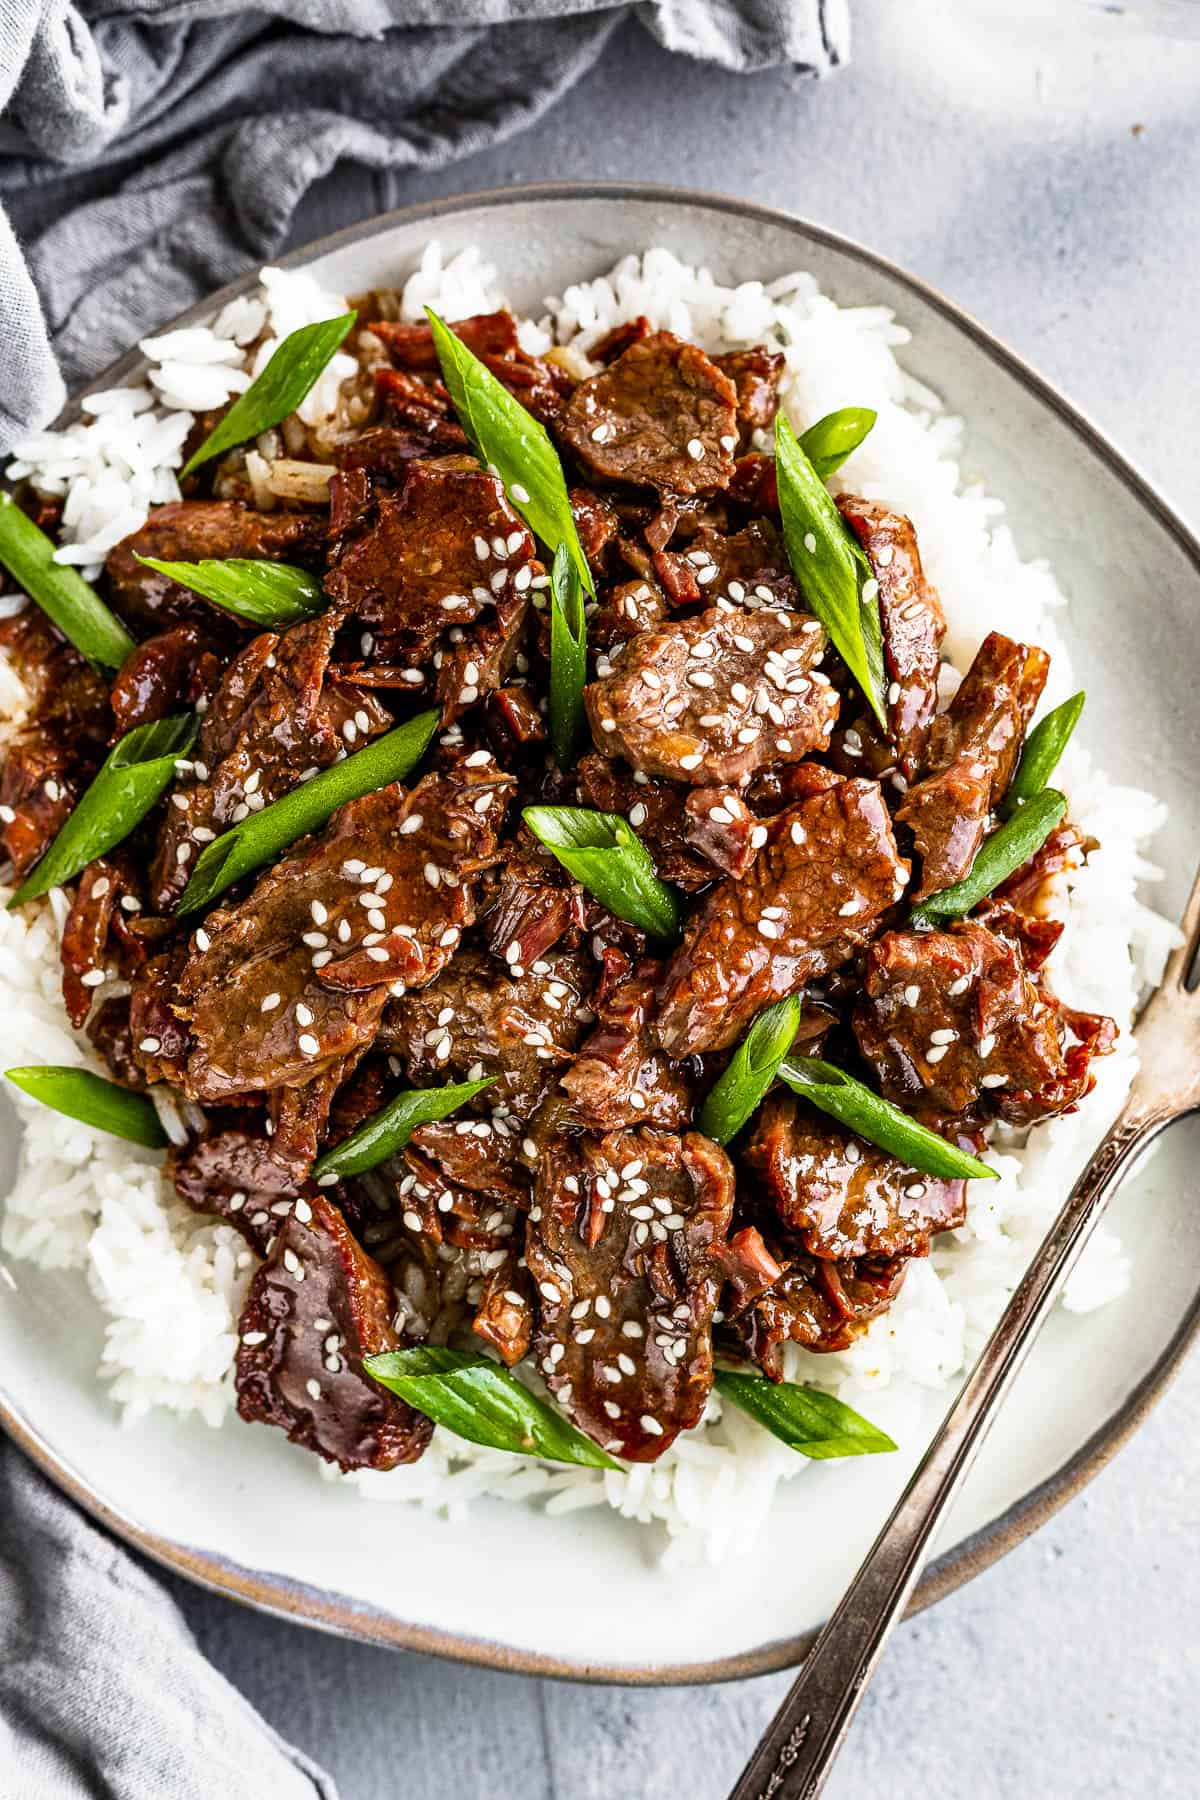 Instant Pot Mongolian Beef Over White Rice on a Gray Plate with a fork on the plate